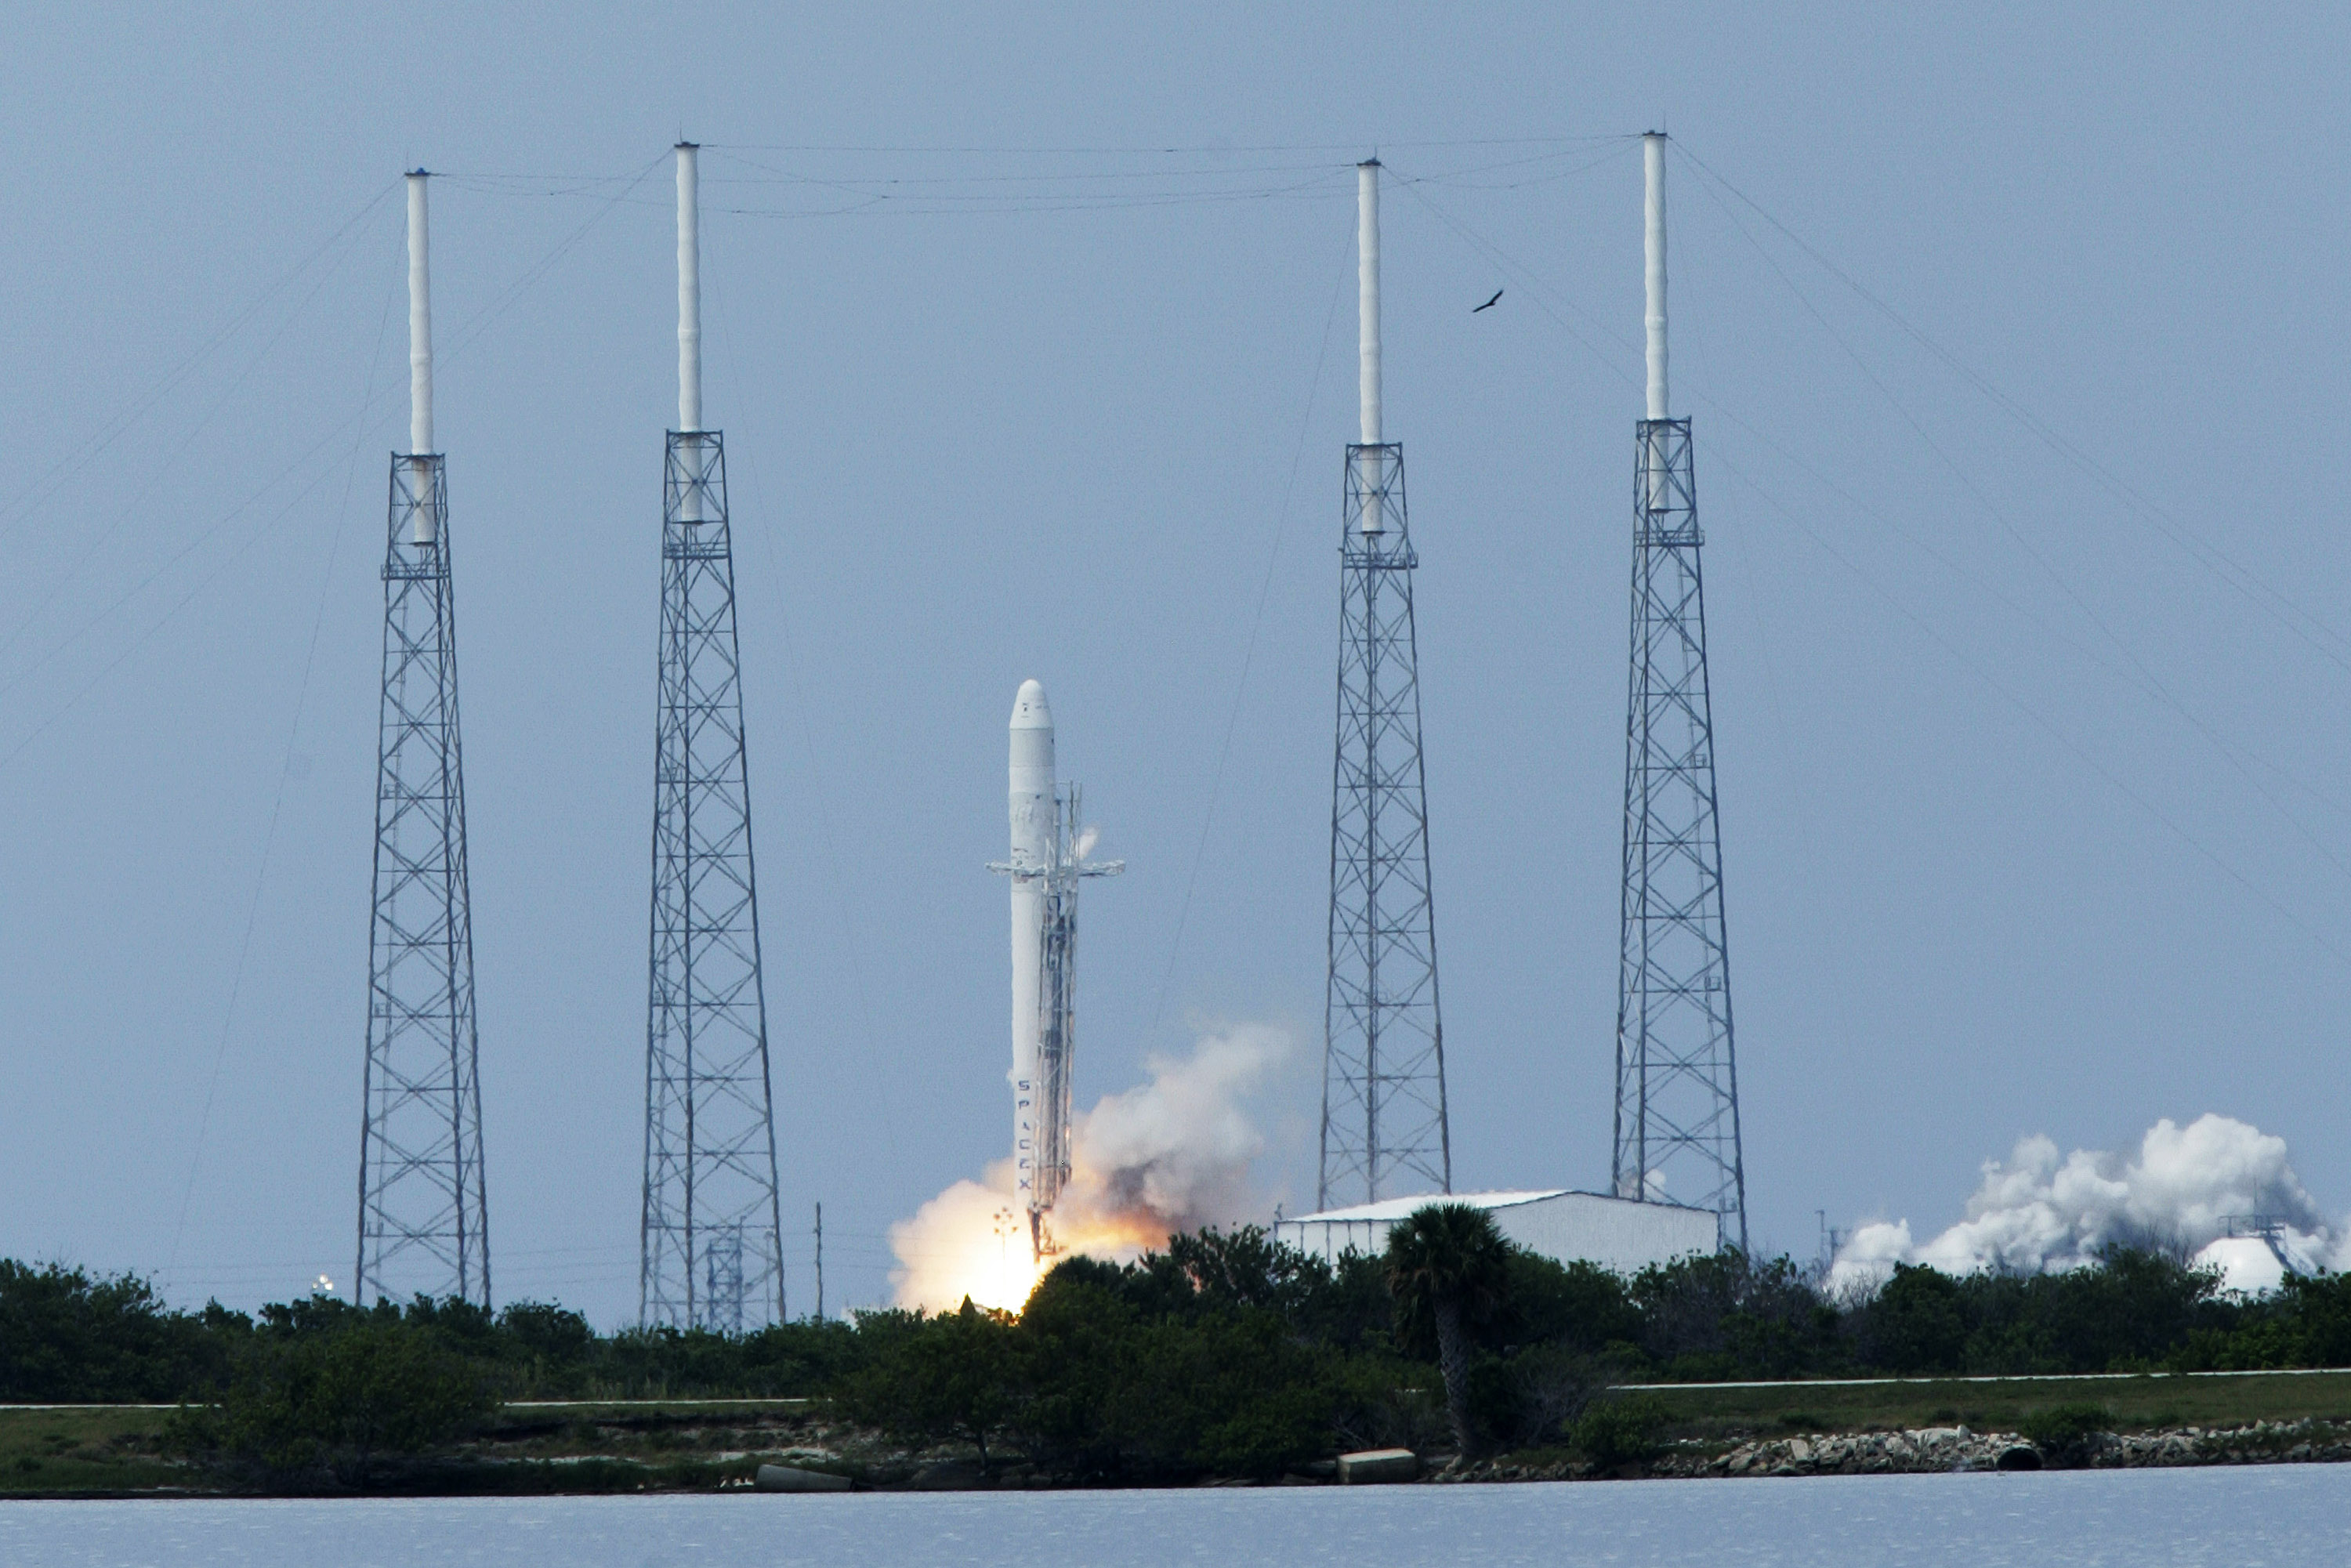 A shot of the Falcon 9 rocket at liftoff on June 4, 2010.